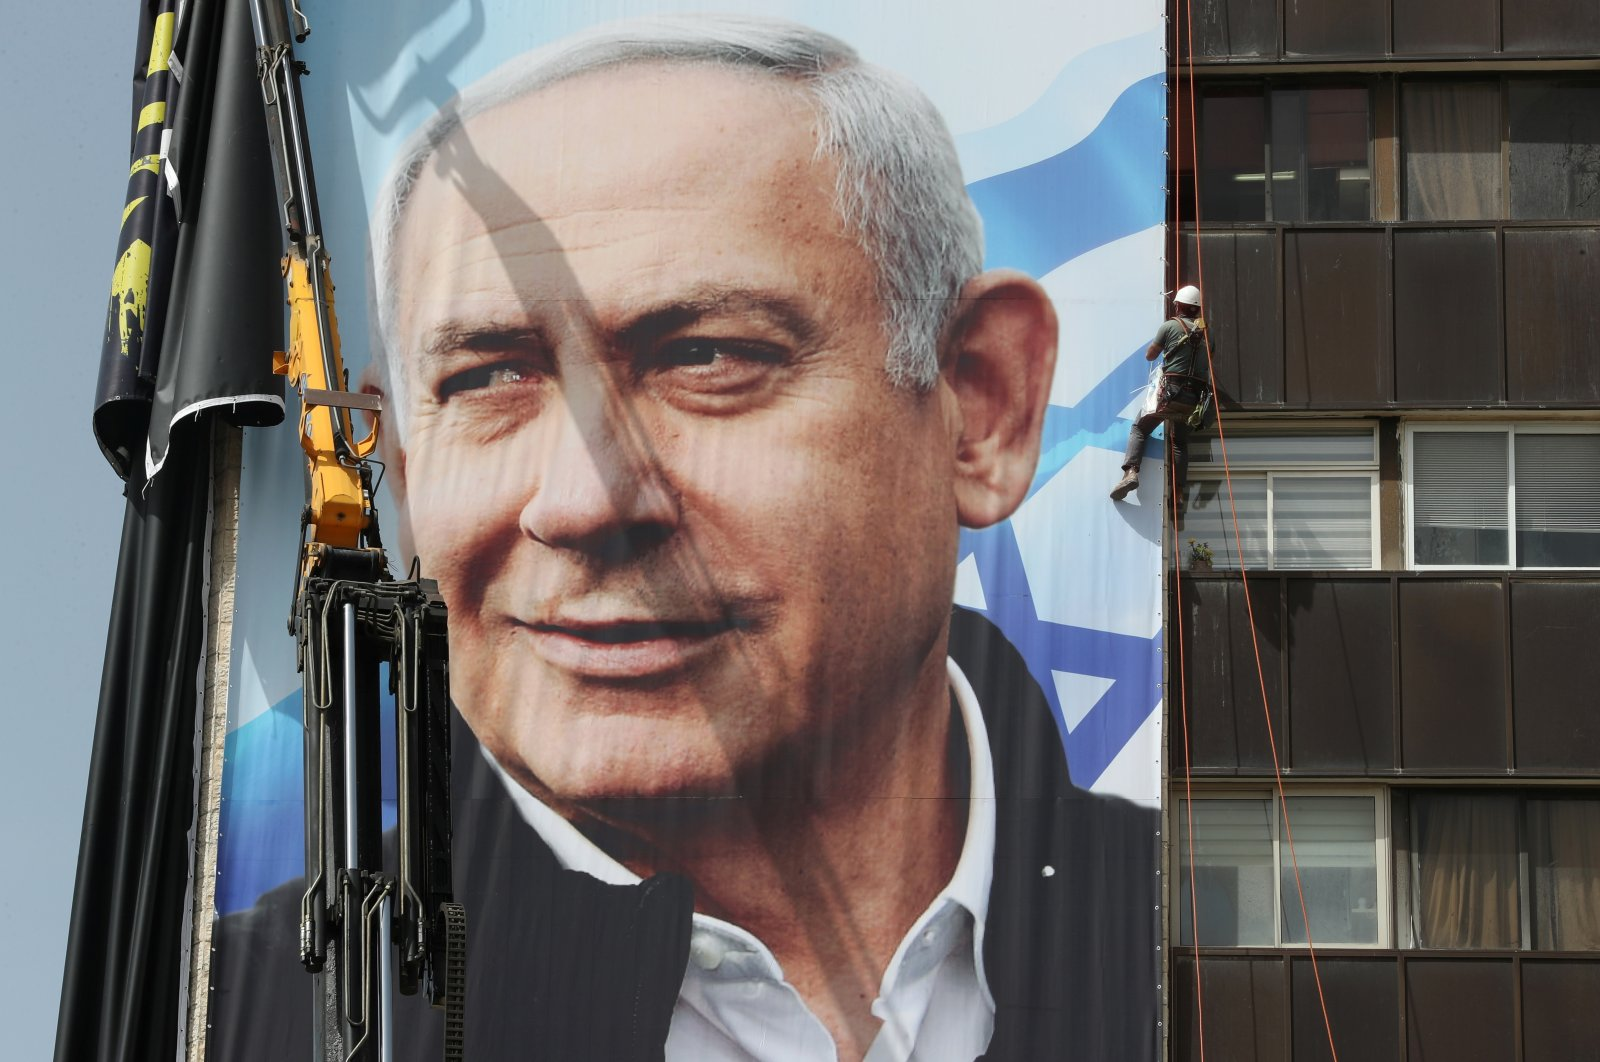 A laborer hangs a Likud Party election campaign banner depicting party leader Israeli Prime Minister Benjamin Netanyahu, ahead of a March 23 ballot, in Jerusalem, March 10, 2021. (Reuters Photo)